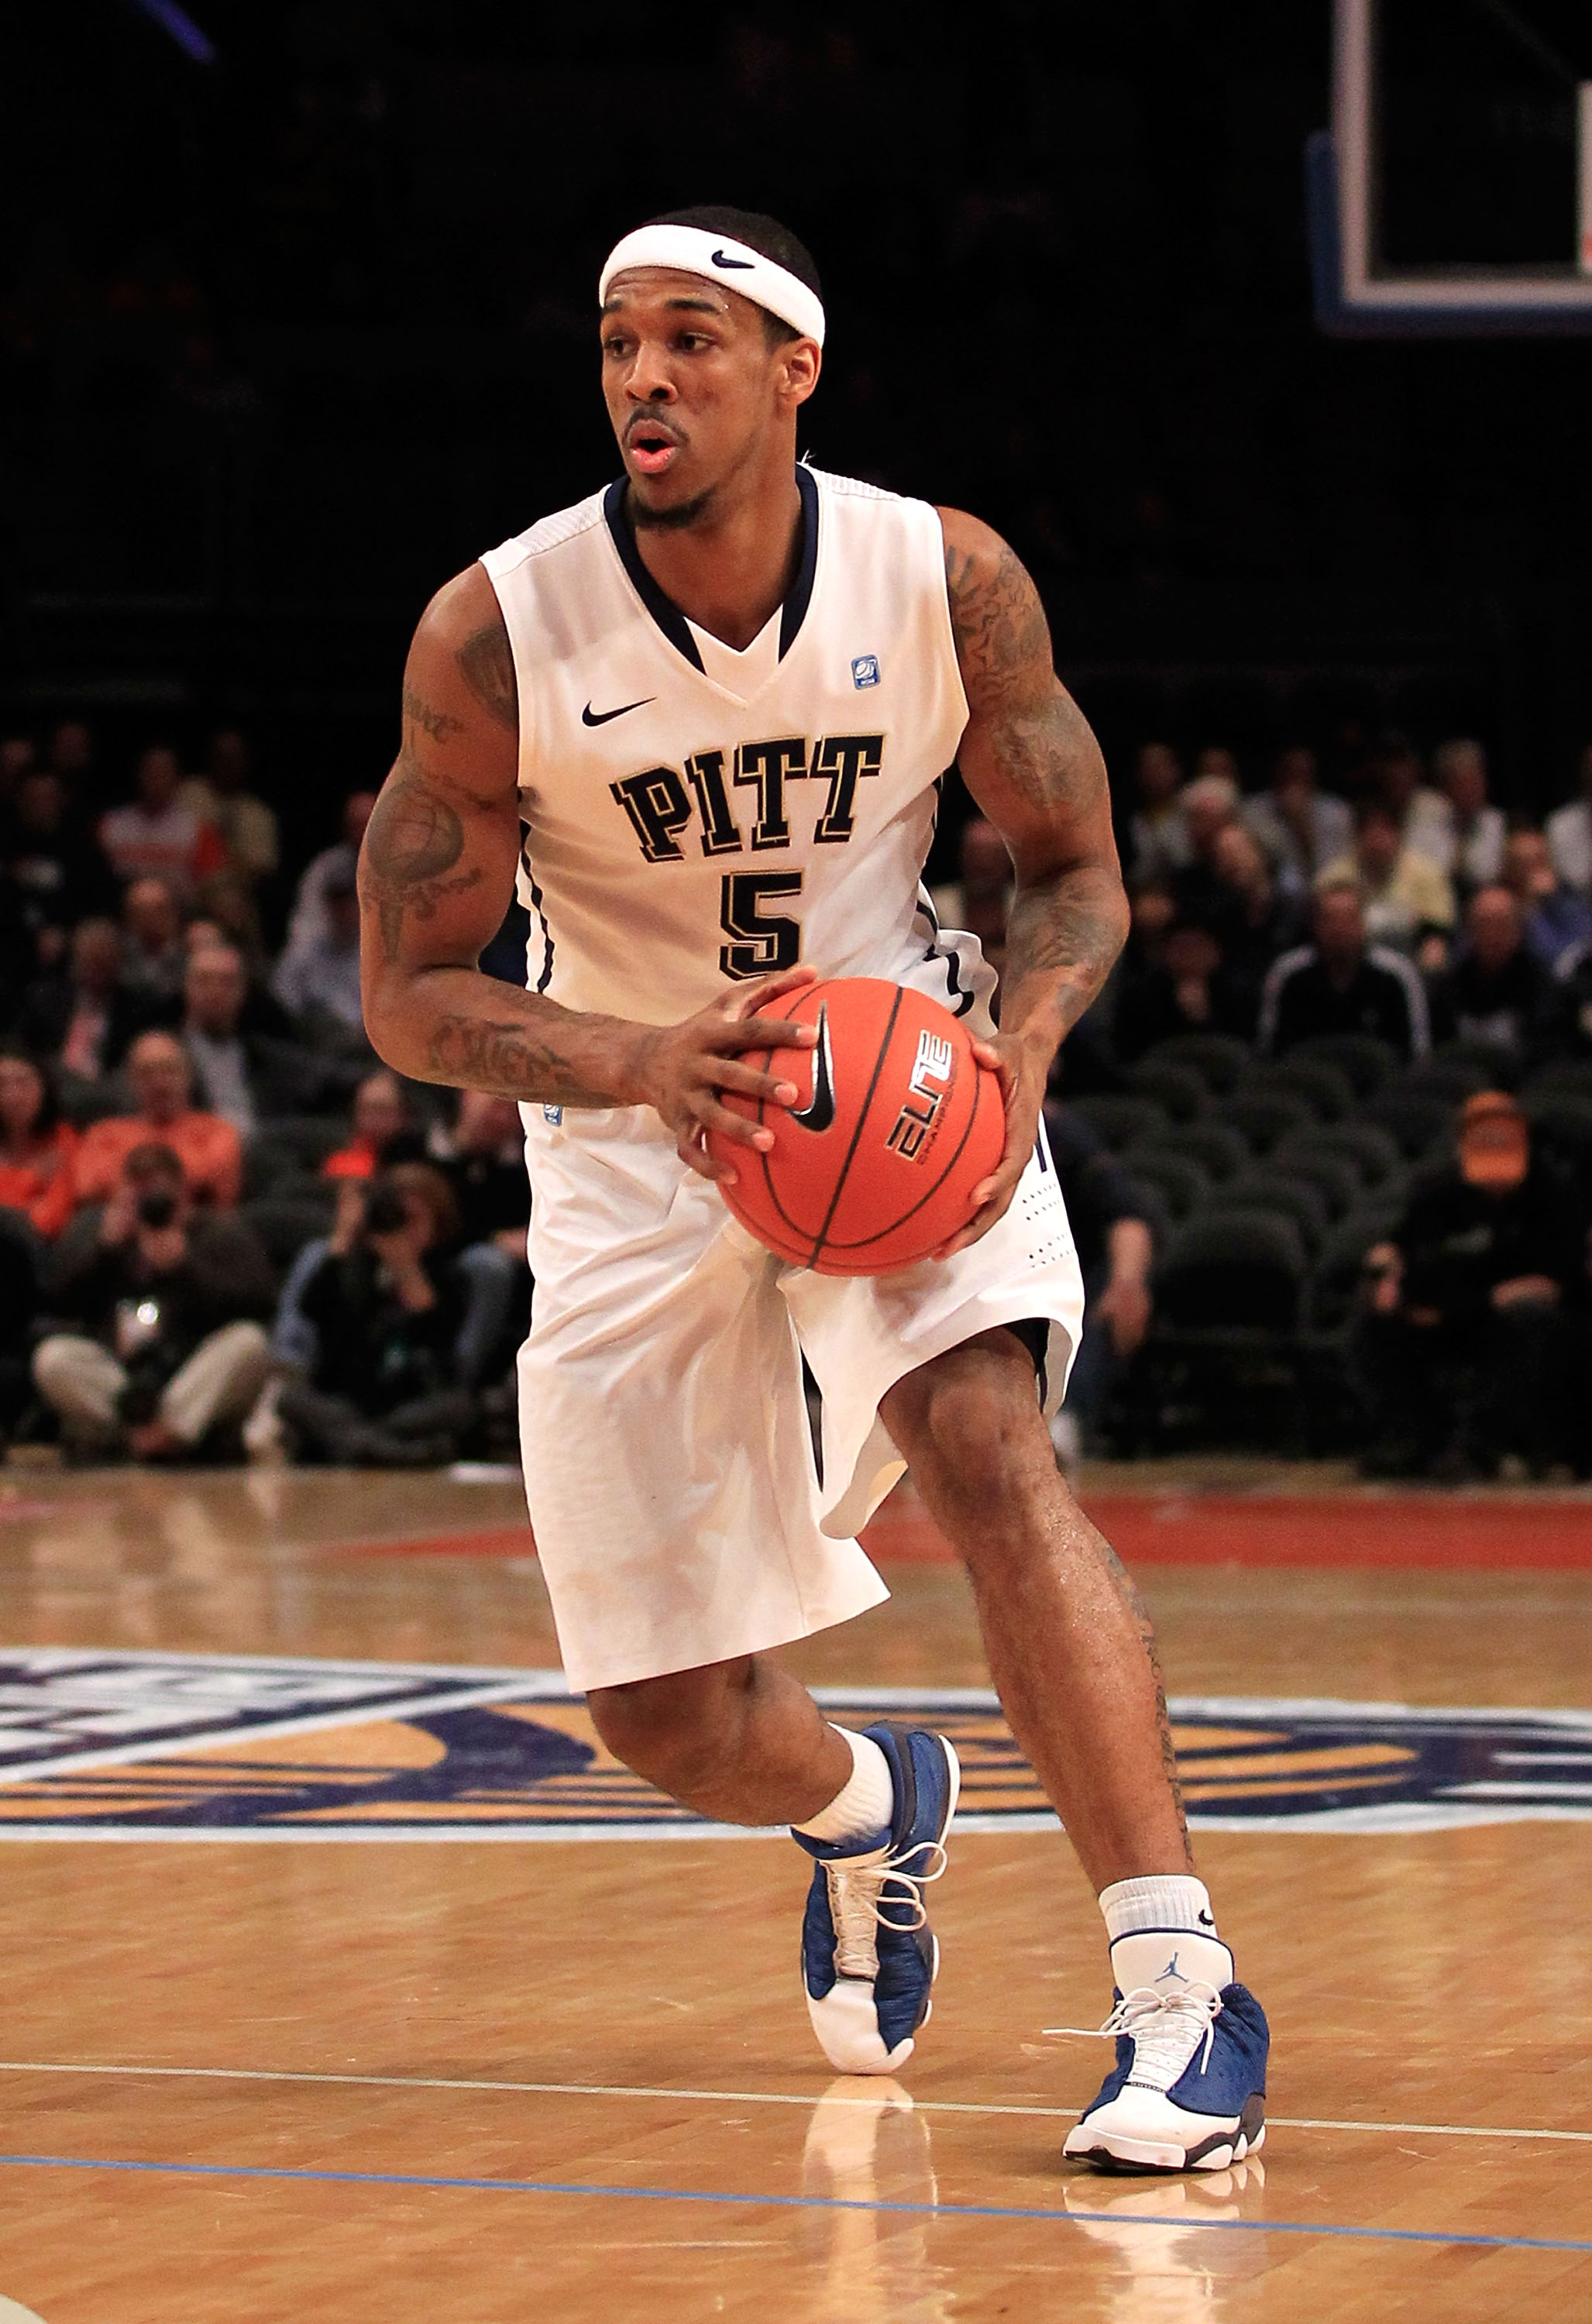 NEW YORK, NY - MARCH 10: Gilbert Brown #5 of the Pittsburgh Panthers brings the ball up court against the Connecticut Huskies during the quarterfinals of the 2011 Big East Men's Basketball Tournament presented by American Eagle Outfitters  at Madison Squa